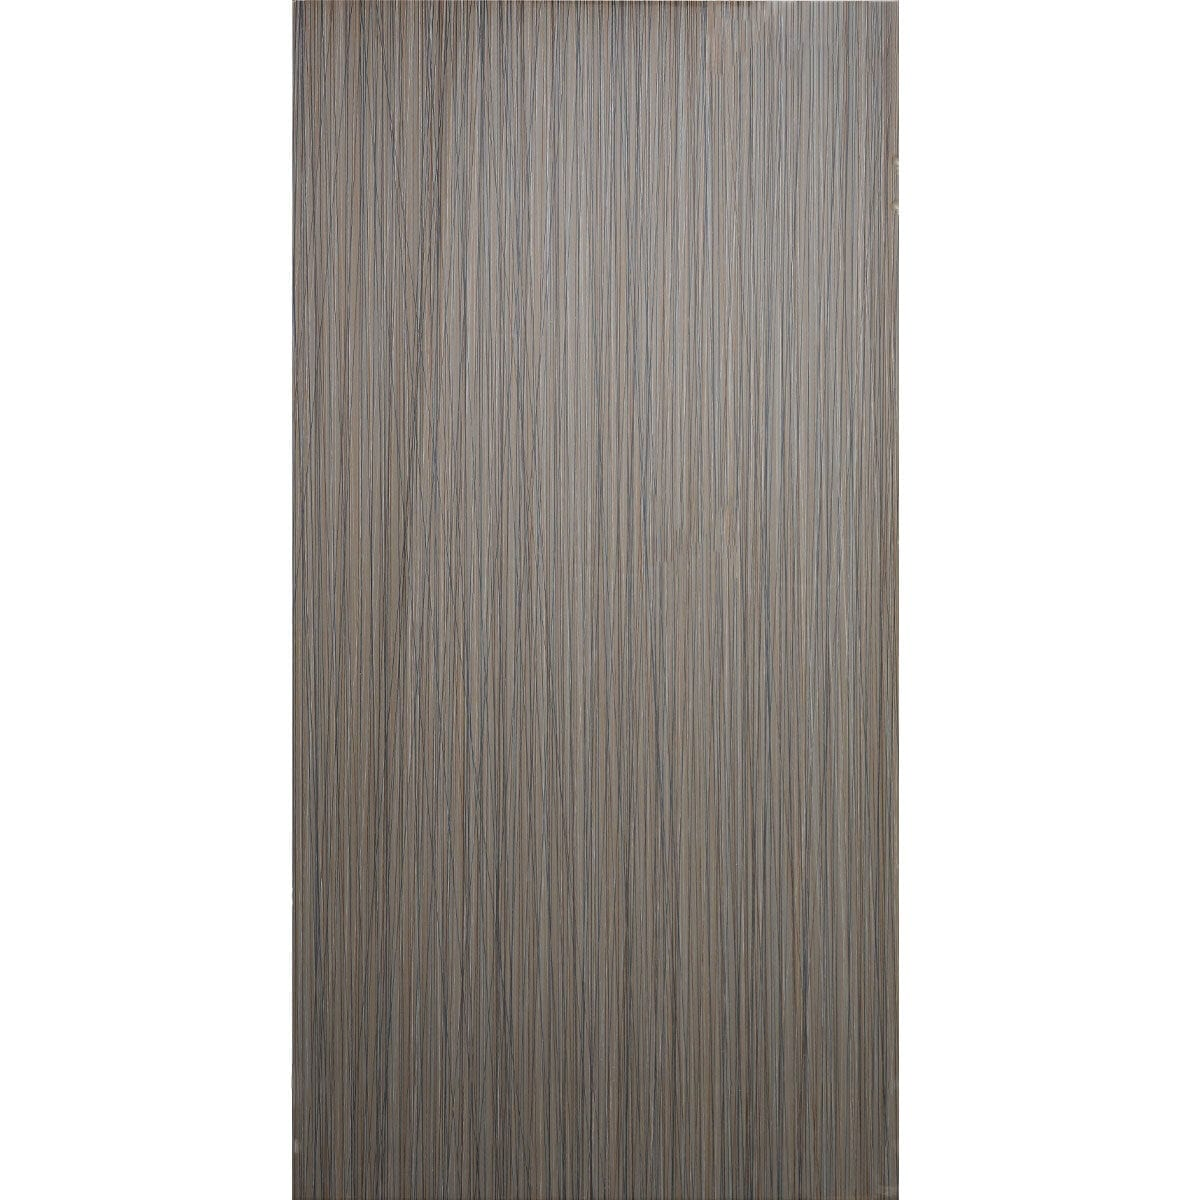 BAMBO LINEAL STRIP SAGE TAUPE T10347 P1